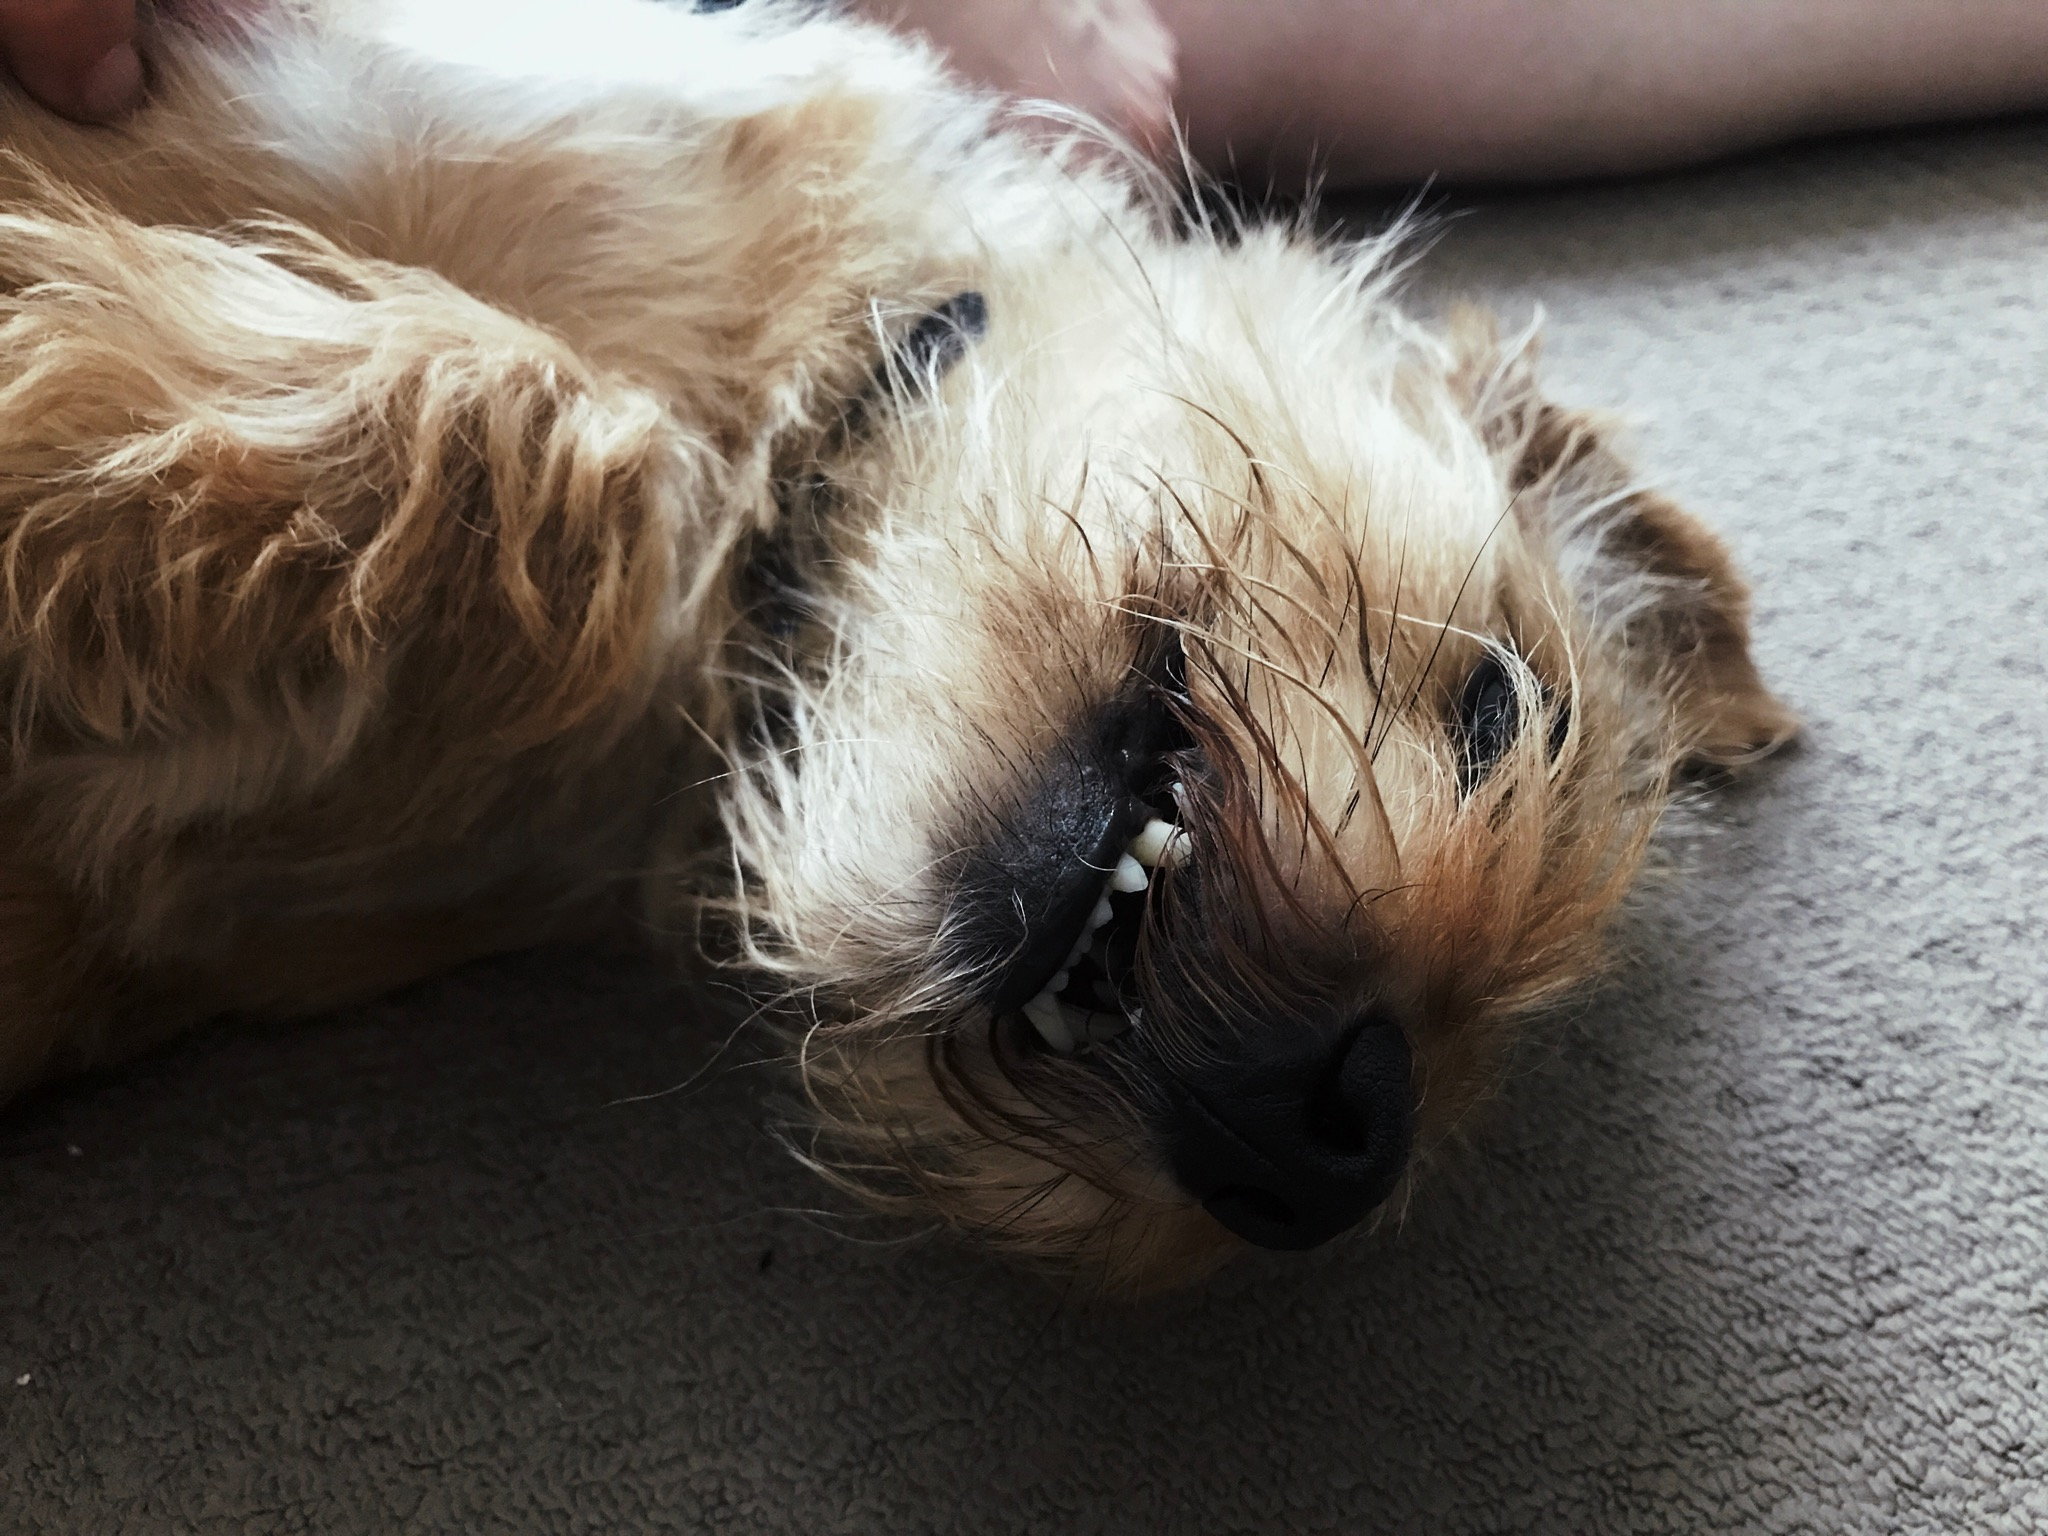 A close-up of our dog Beanie lying upside-down, looking over at the camera with his bottom teeth showing and he looks very derpy.